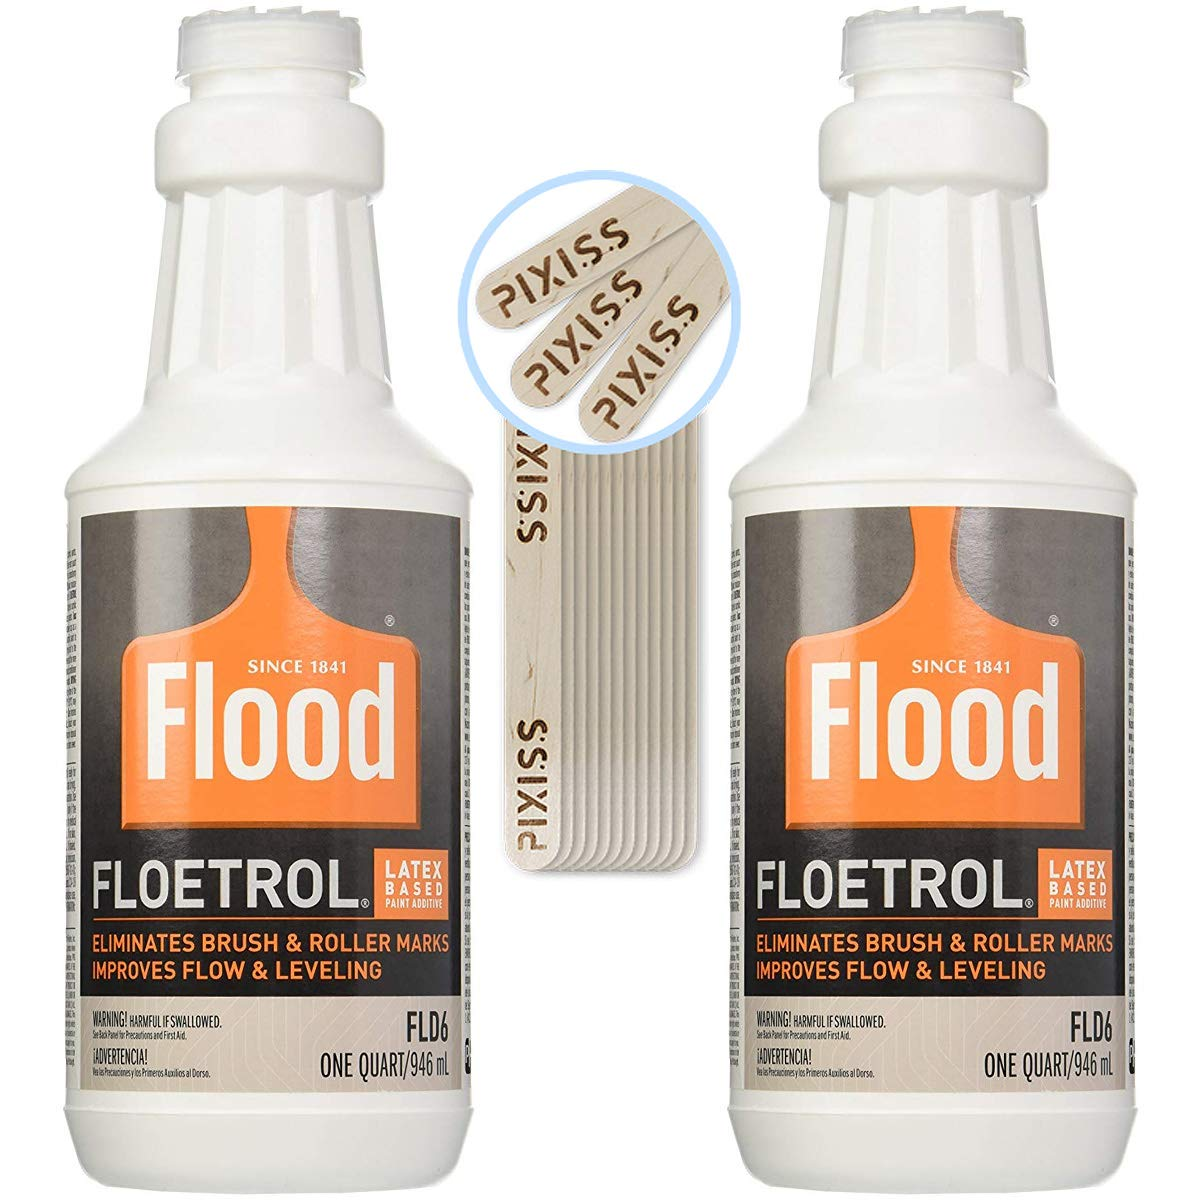 2X 1-Quart Flood Floetrol Additive and 20x 6-inch Pixiss Wood Mixing Sticks Pouring Bundle